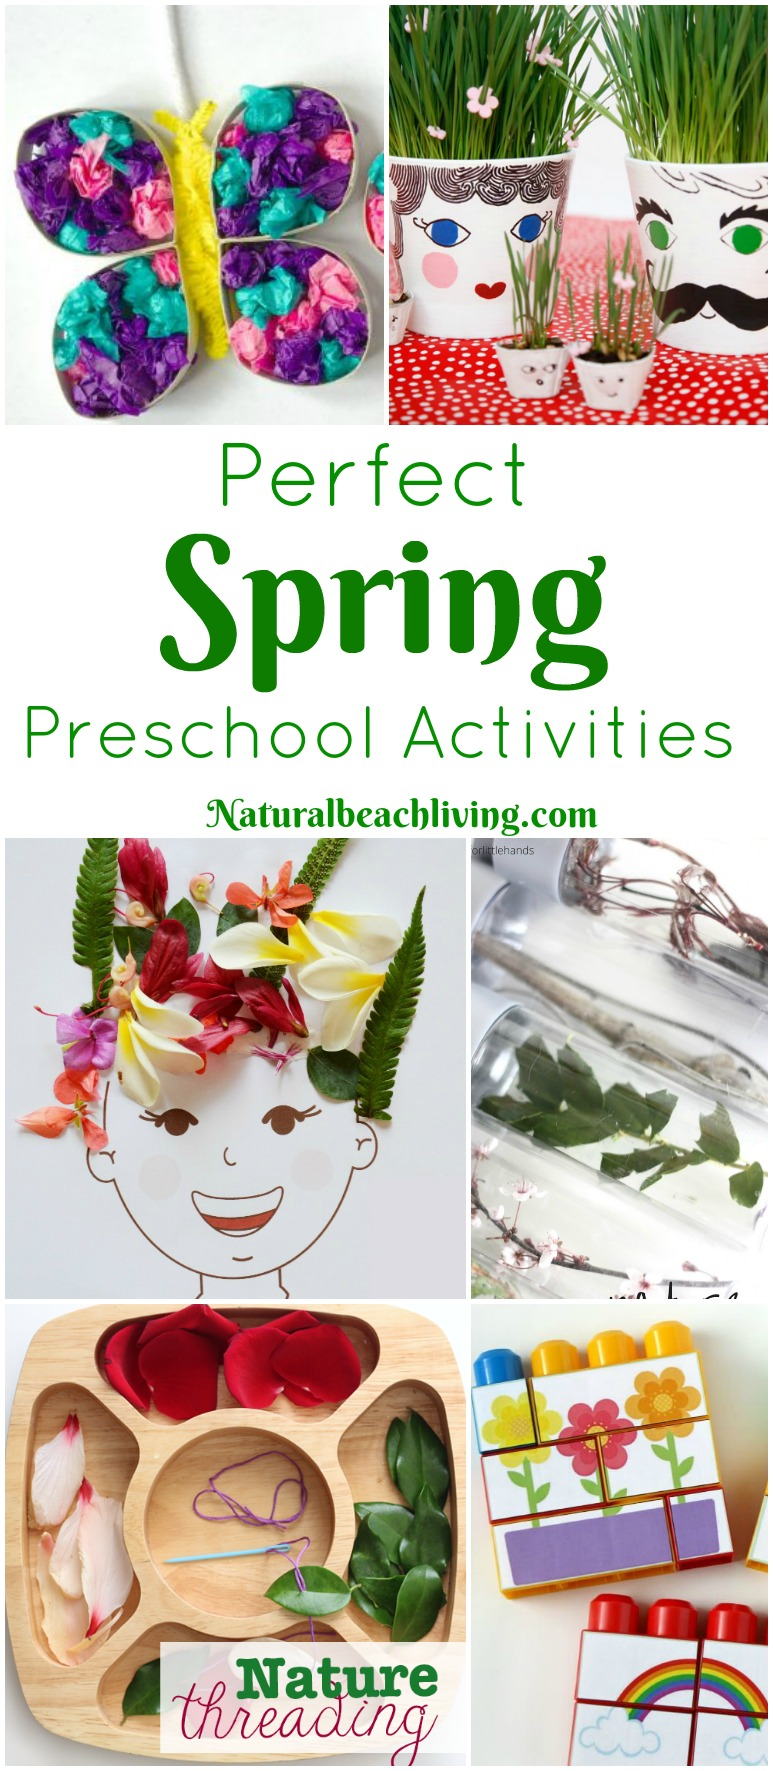 45+ Perfect Spring Preschool Activities, flowers, seeds, gardens, art, colors, Science, Nature ideas and more